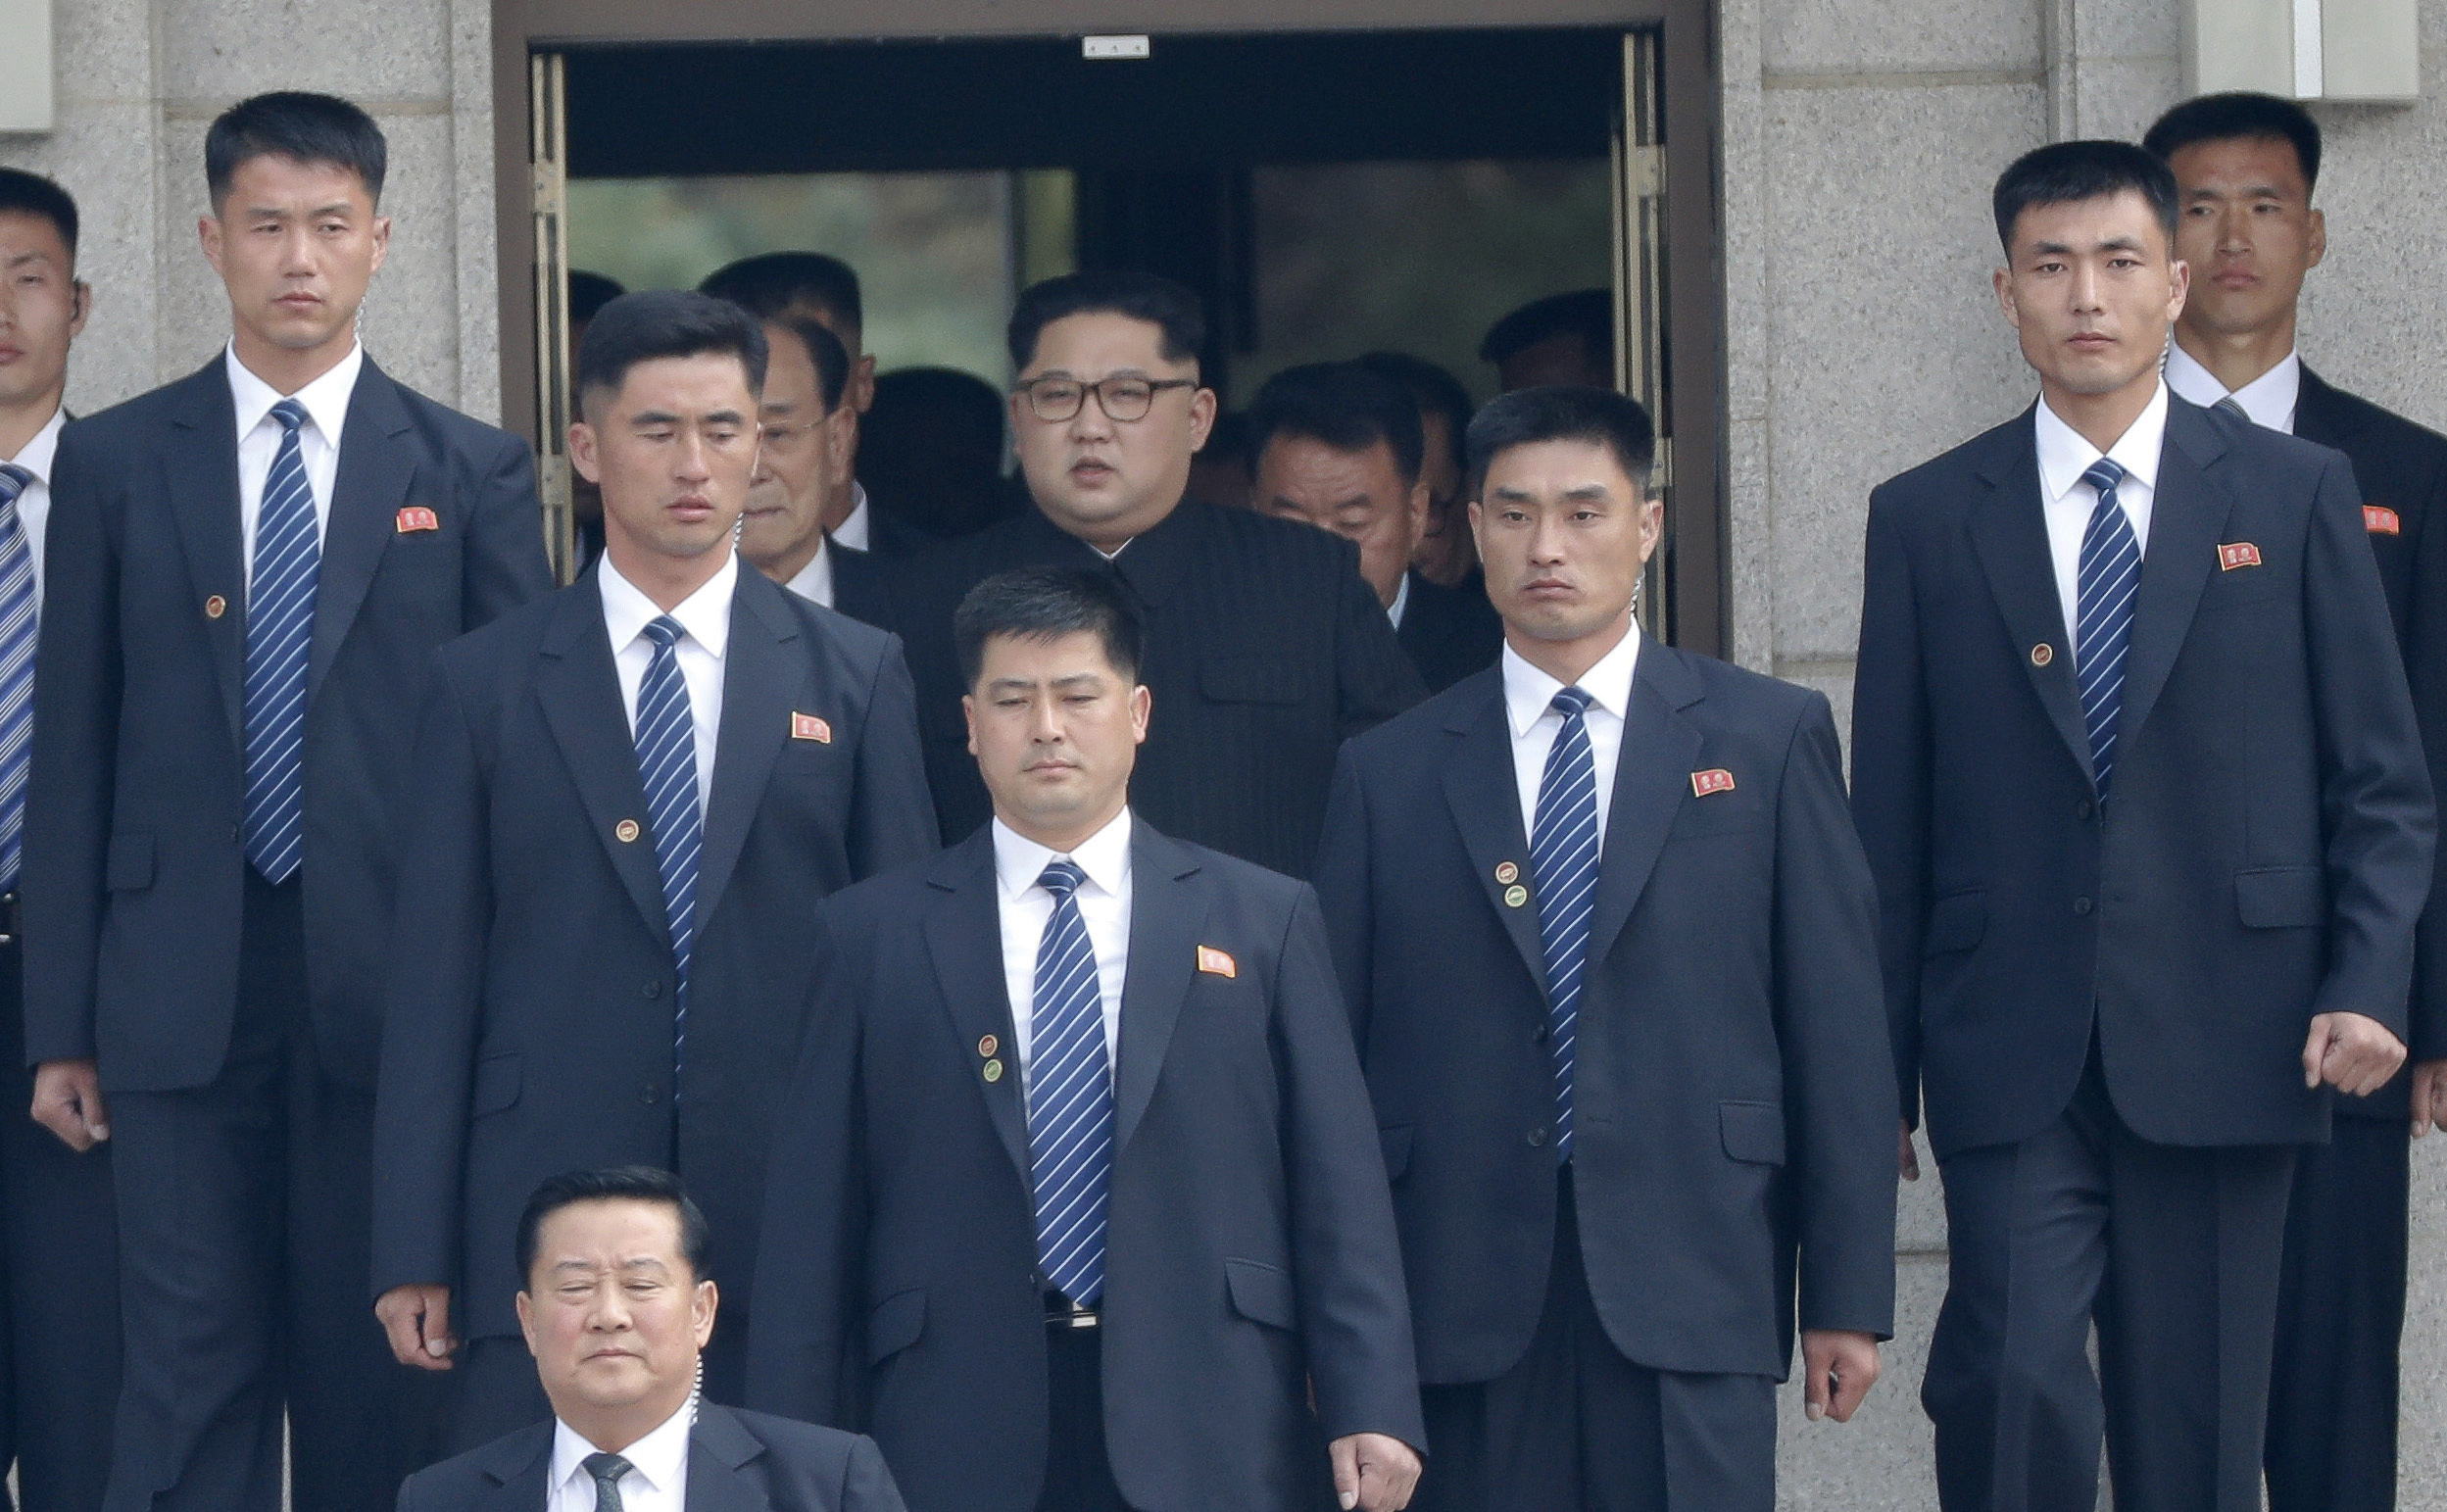 Kim Jong Un rodeado por sus guardaespaldas. (Korea Summit Press Pool via AP)